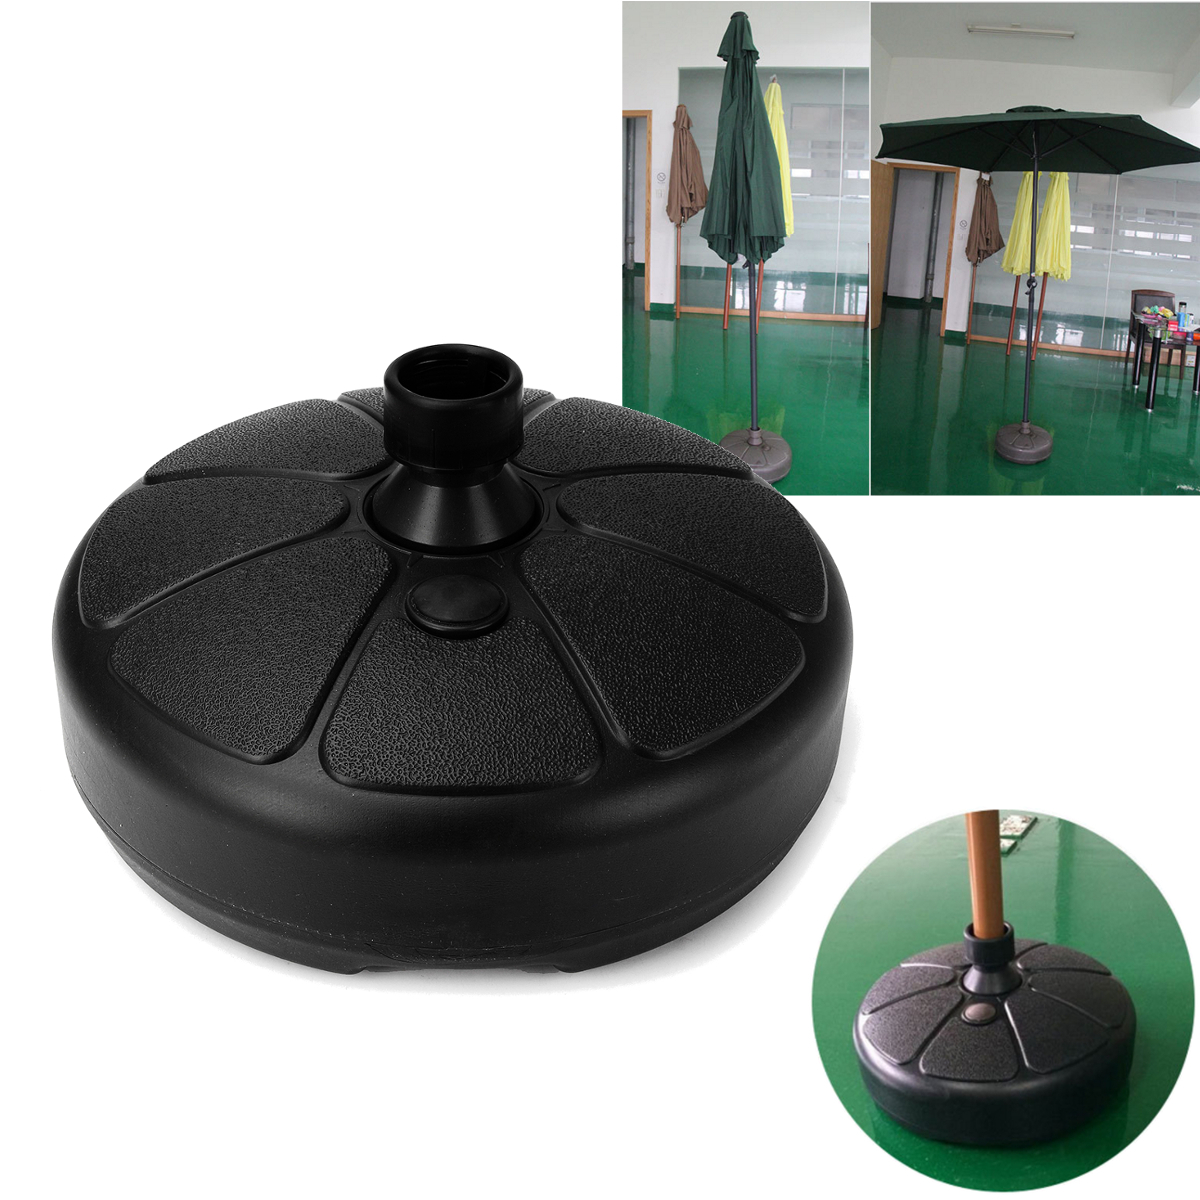 Umbrella Stand For Garden: Parasol Furnitur Outdoor Round Umbrella Base Stand Heavy